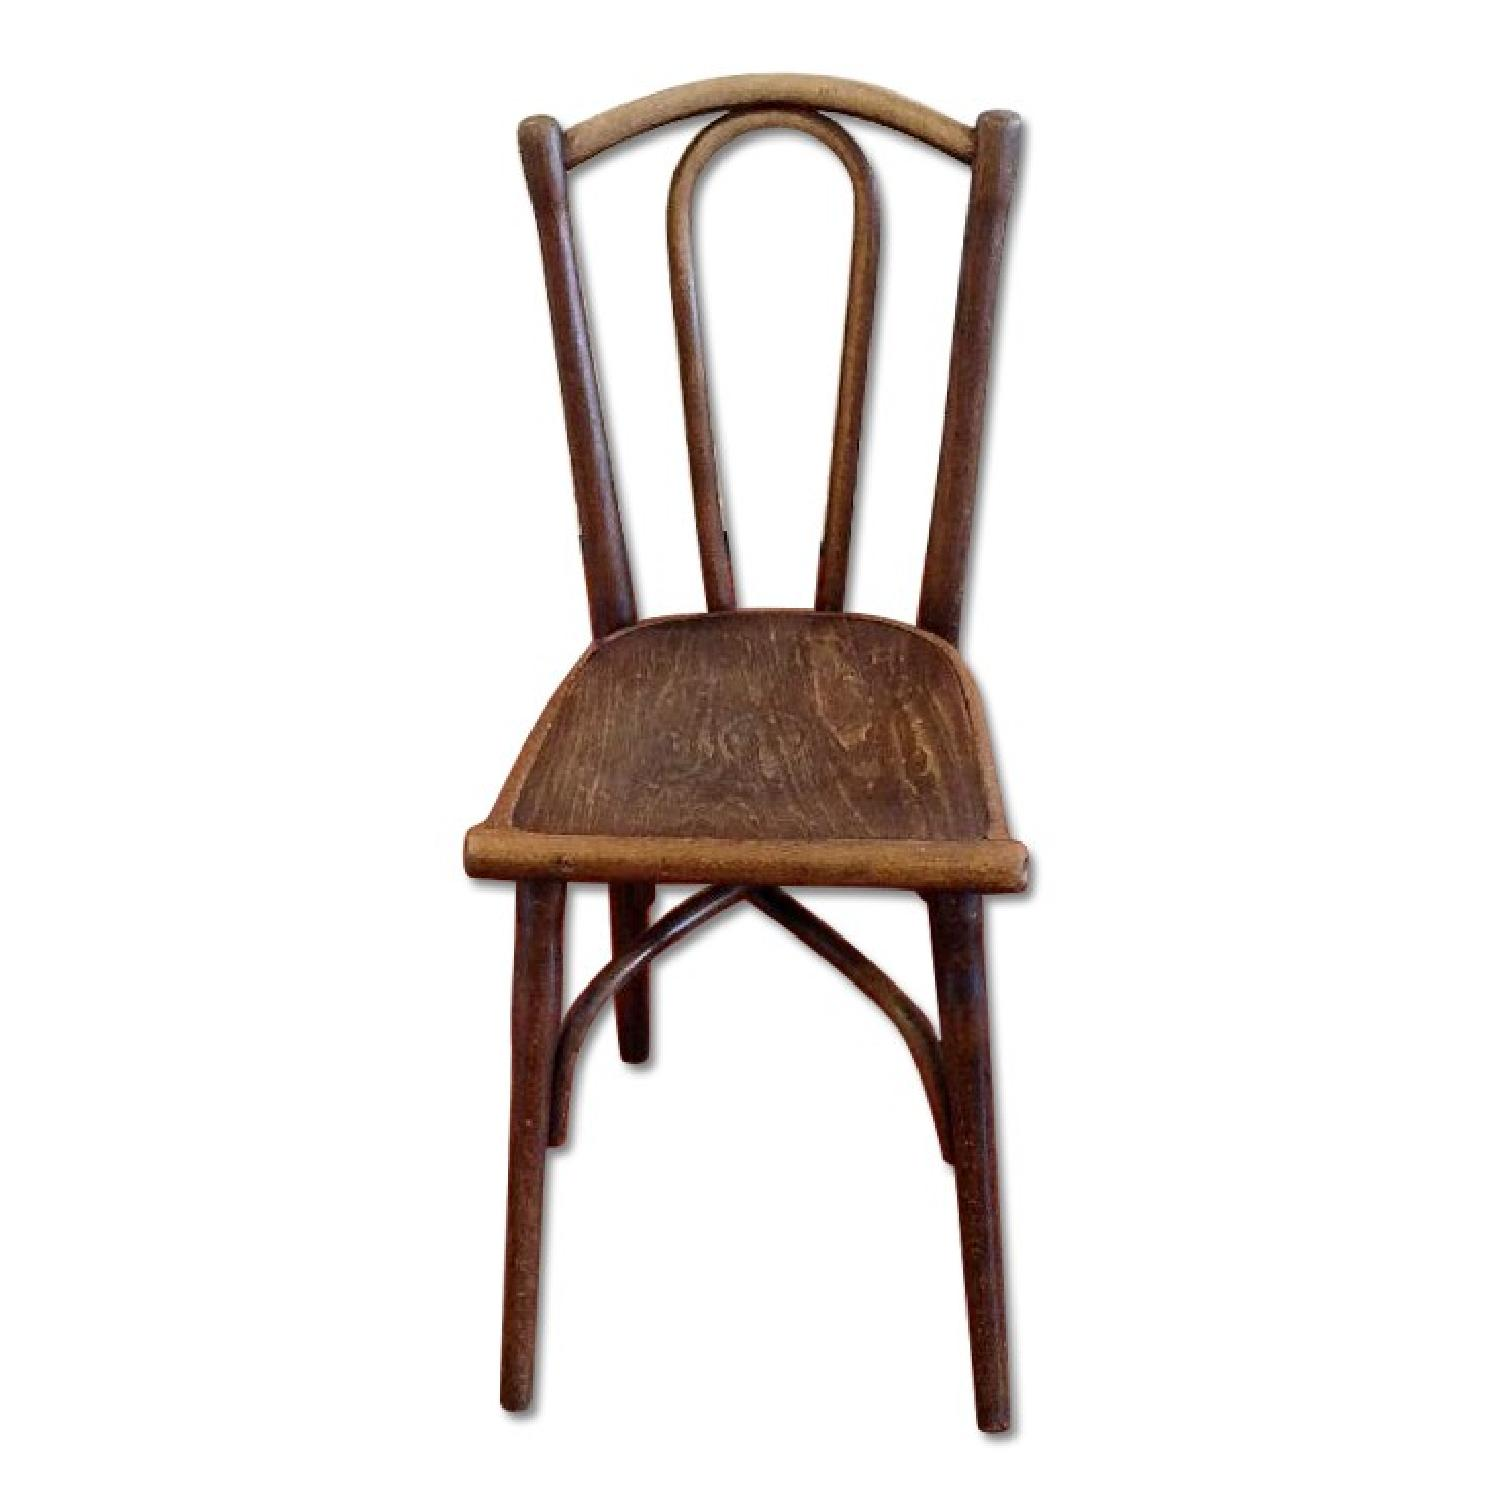 Thonet circa 1920s Bentwood Dining Chair w/ Floral Design Wood Seat - image-0